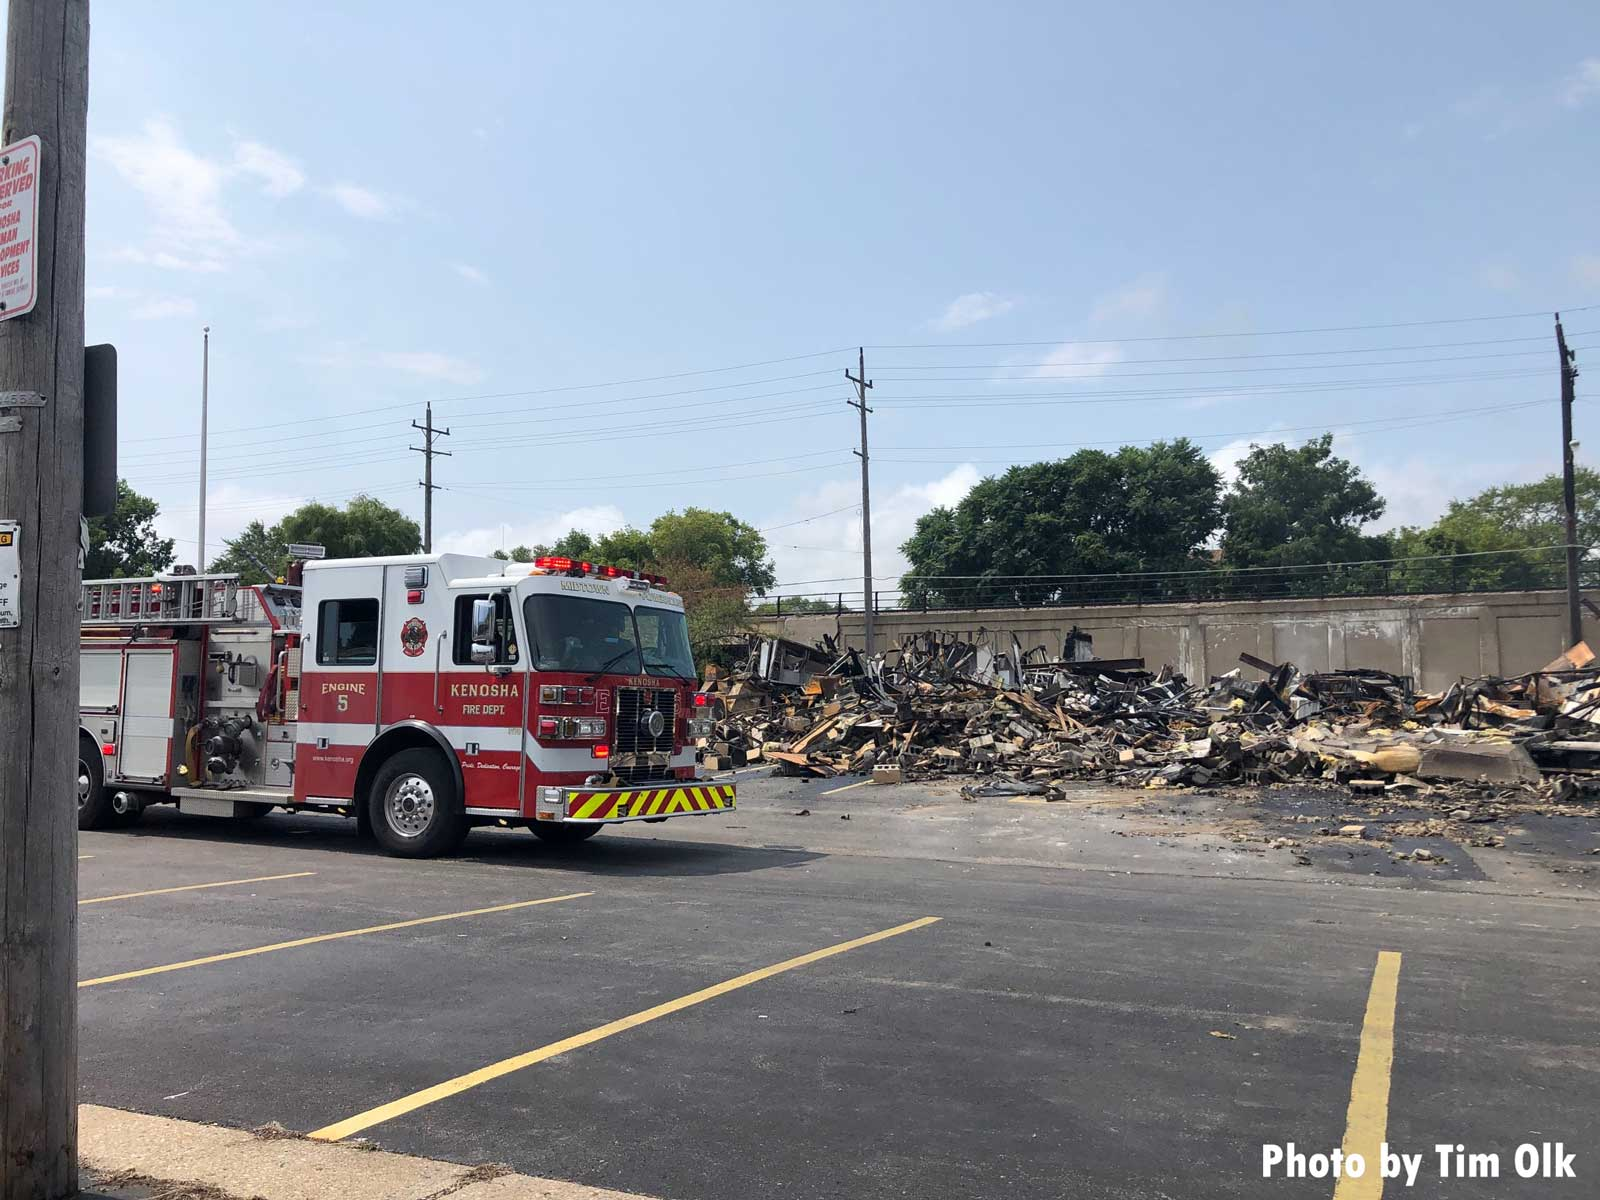 Fire apparatus in front of ruins of building in Kenosha